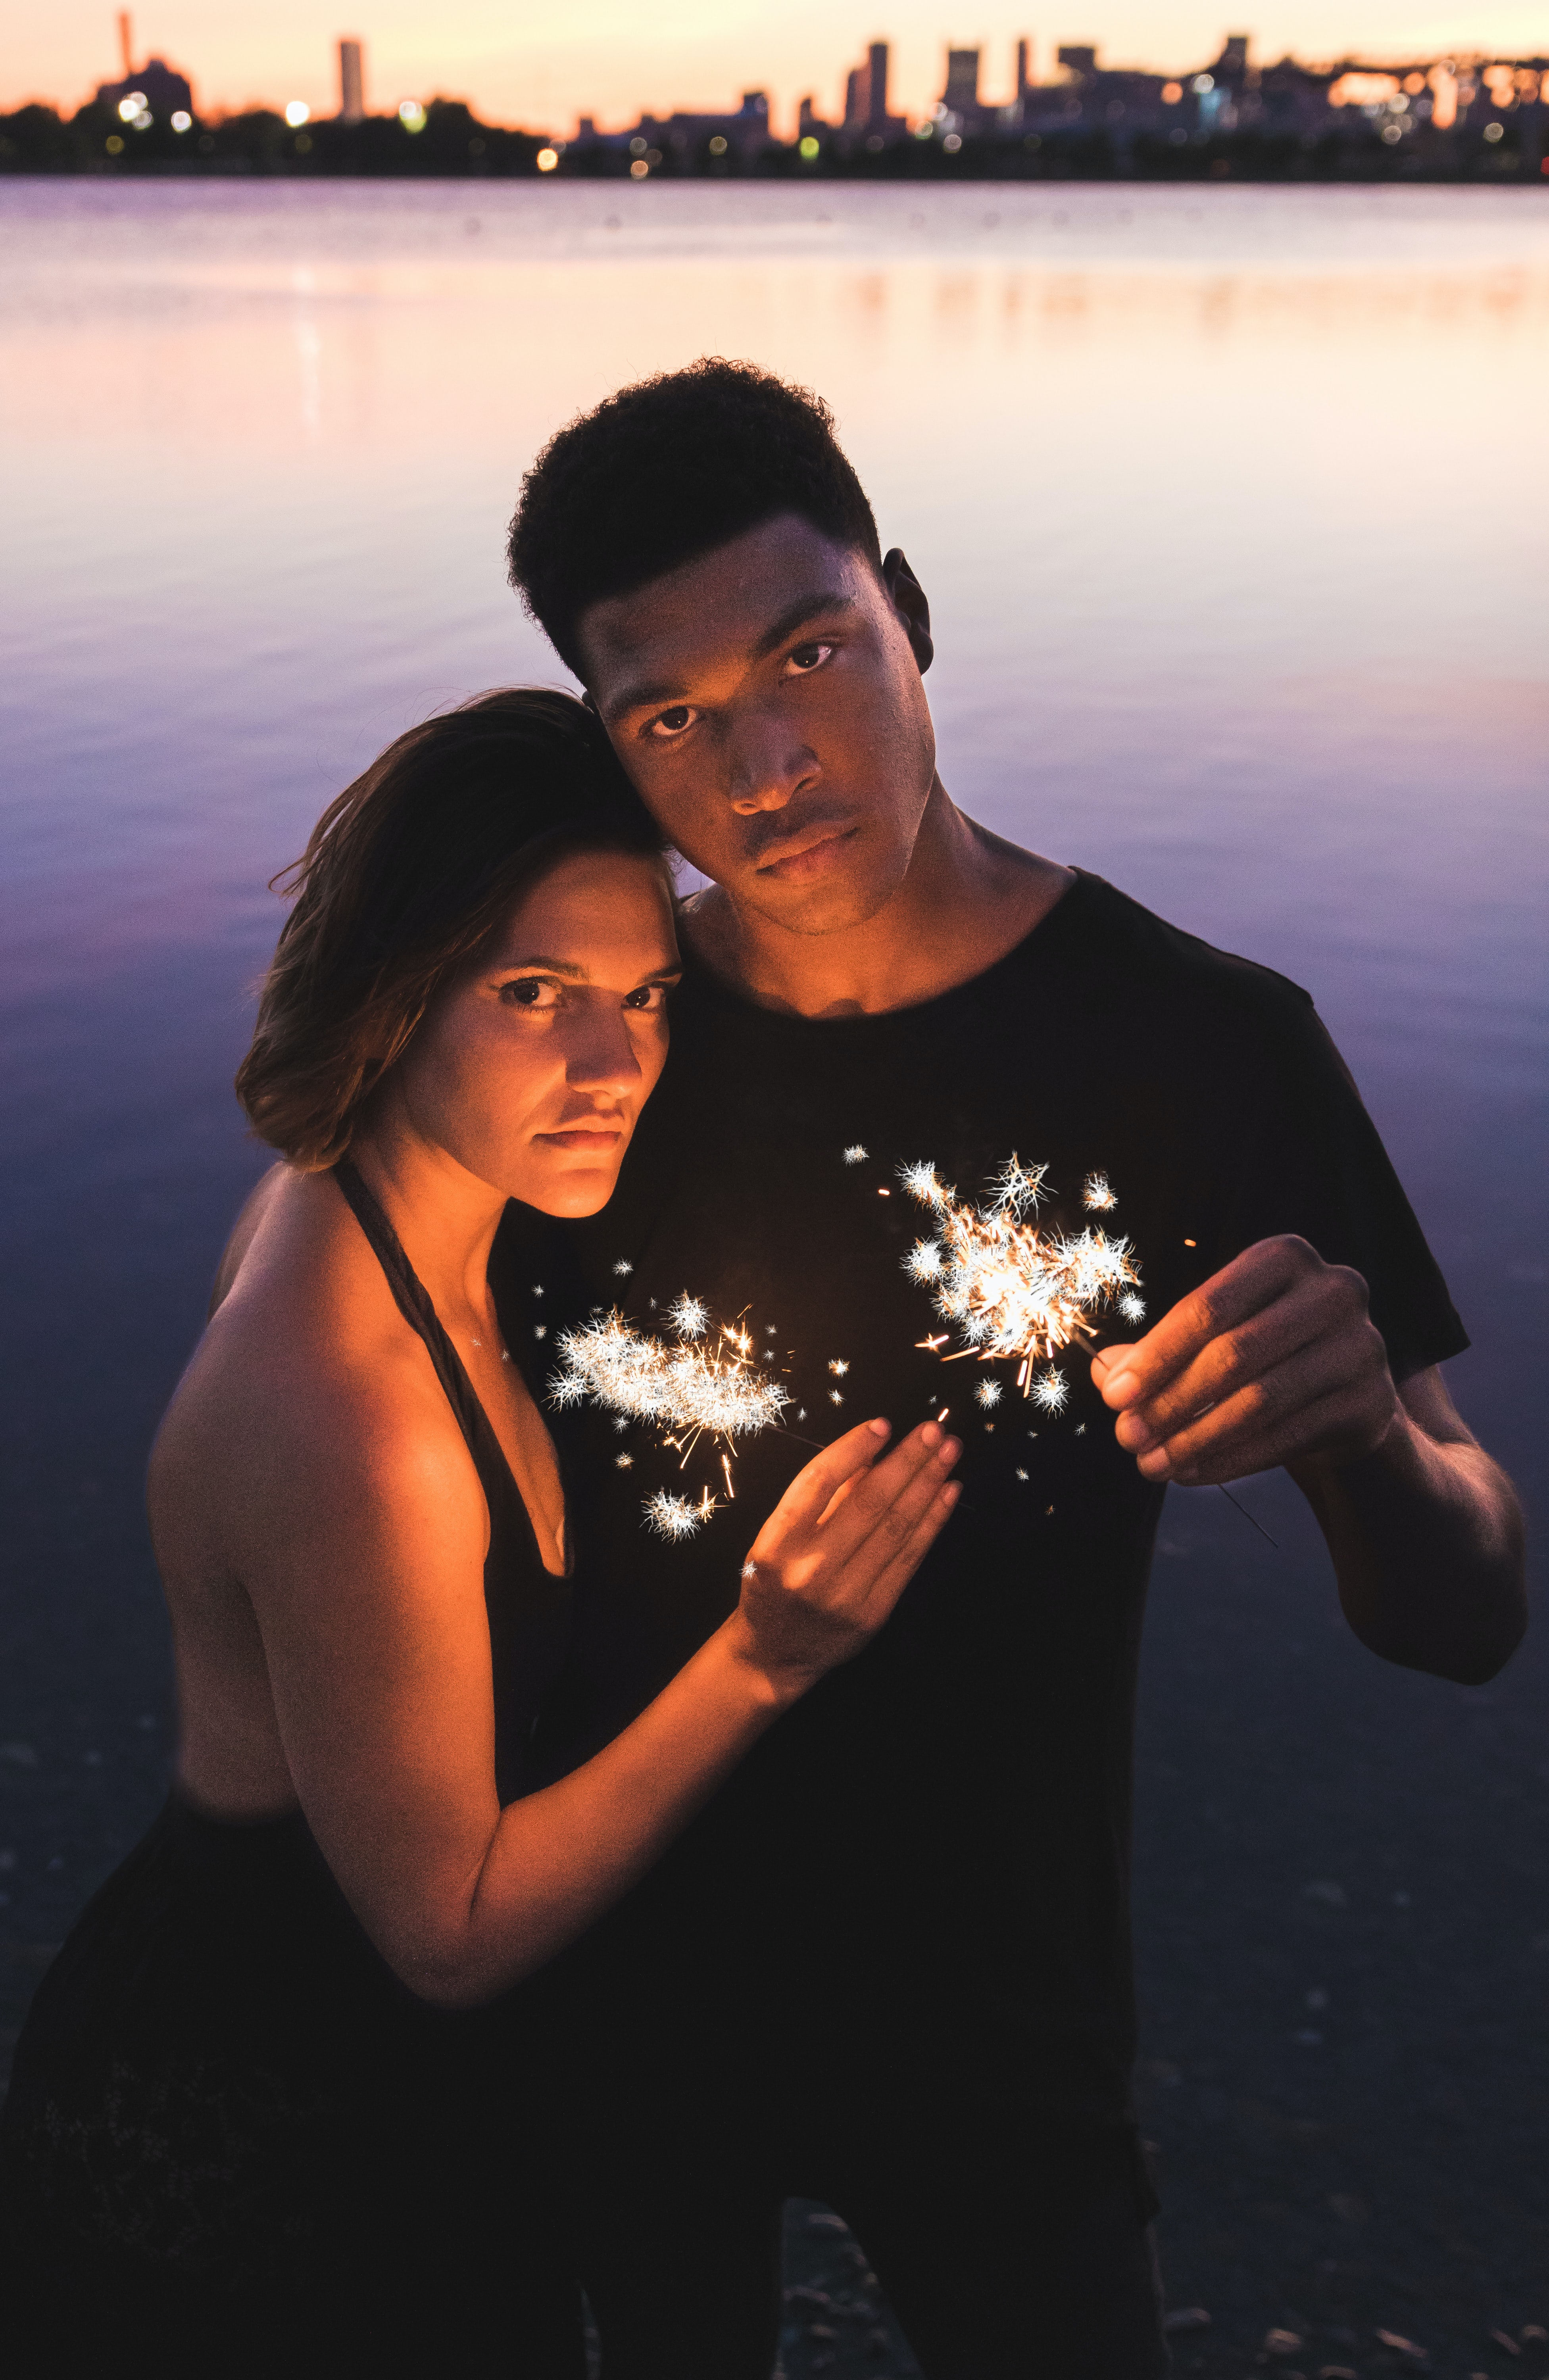 couple holding sparklers standing near body of water at dusk